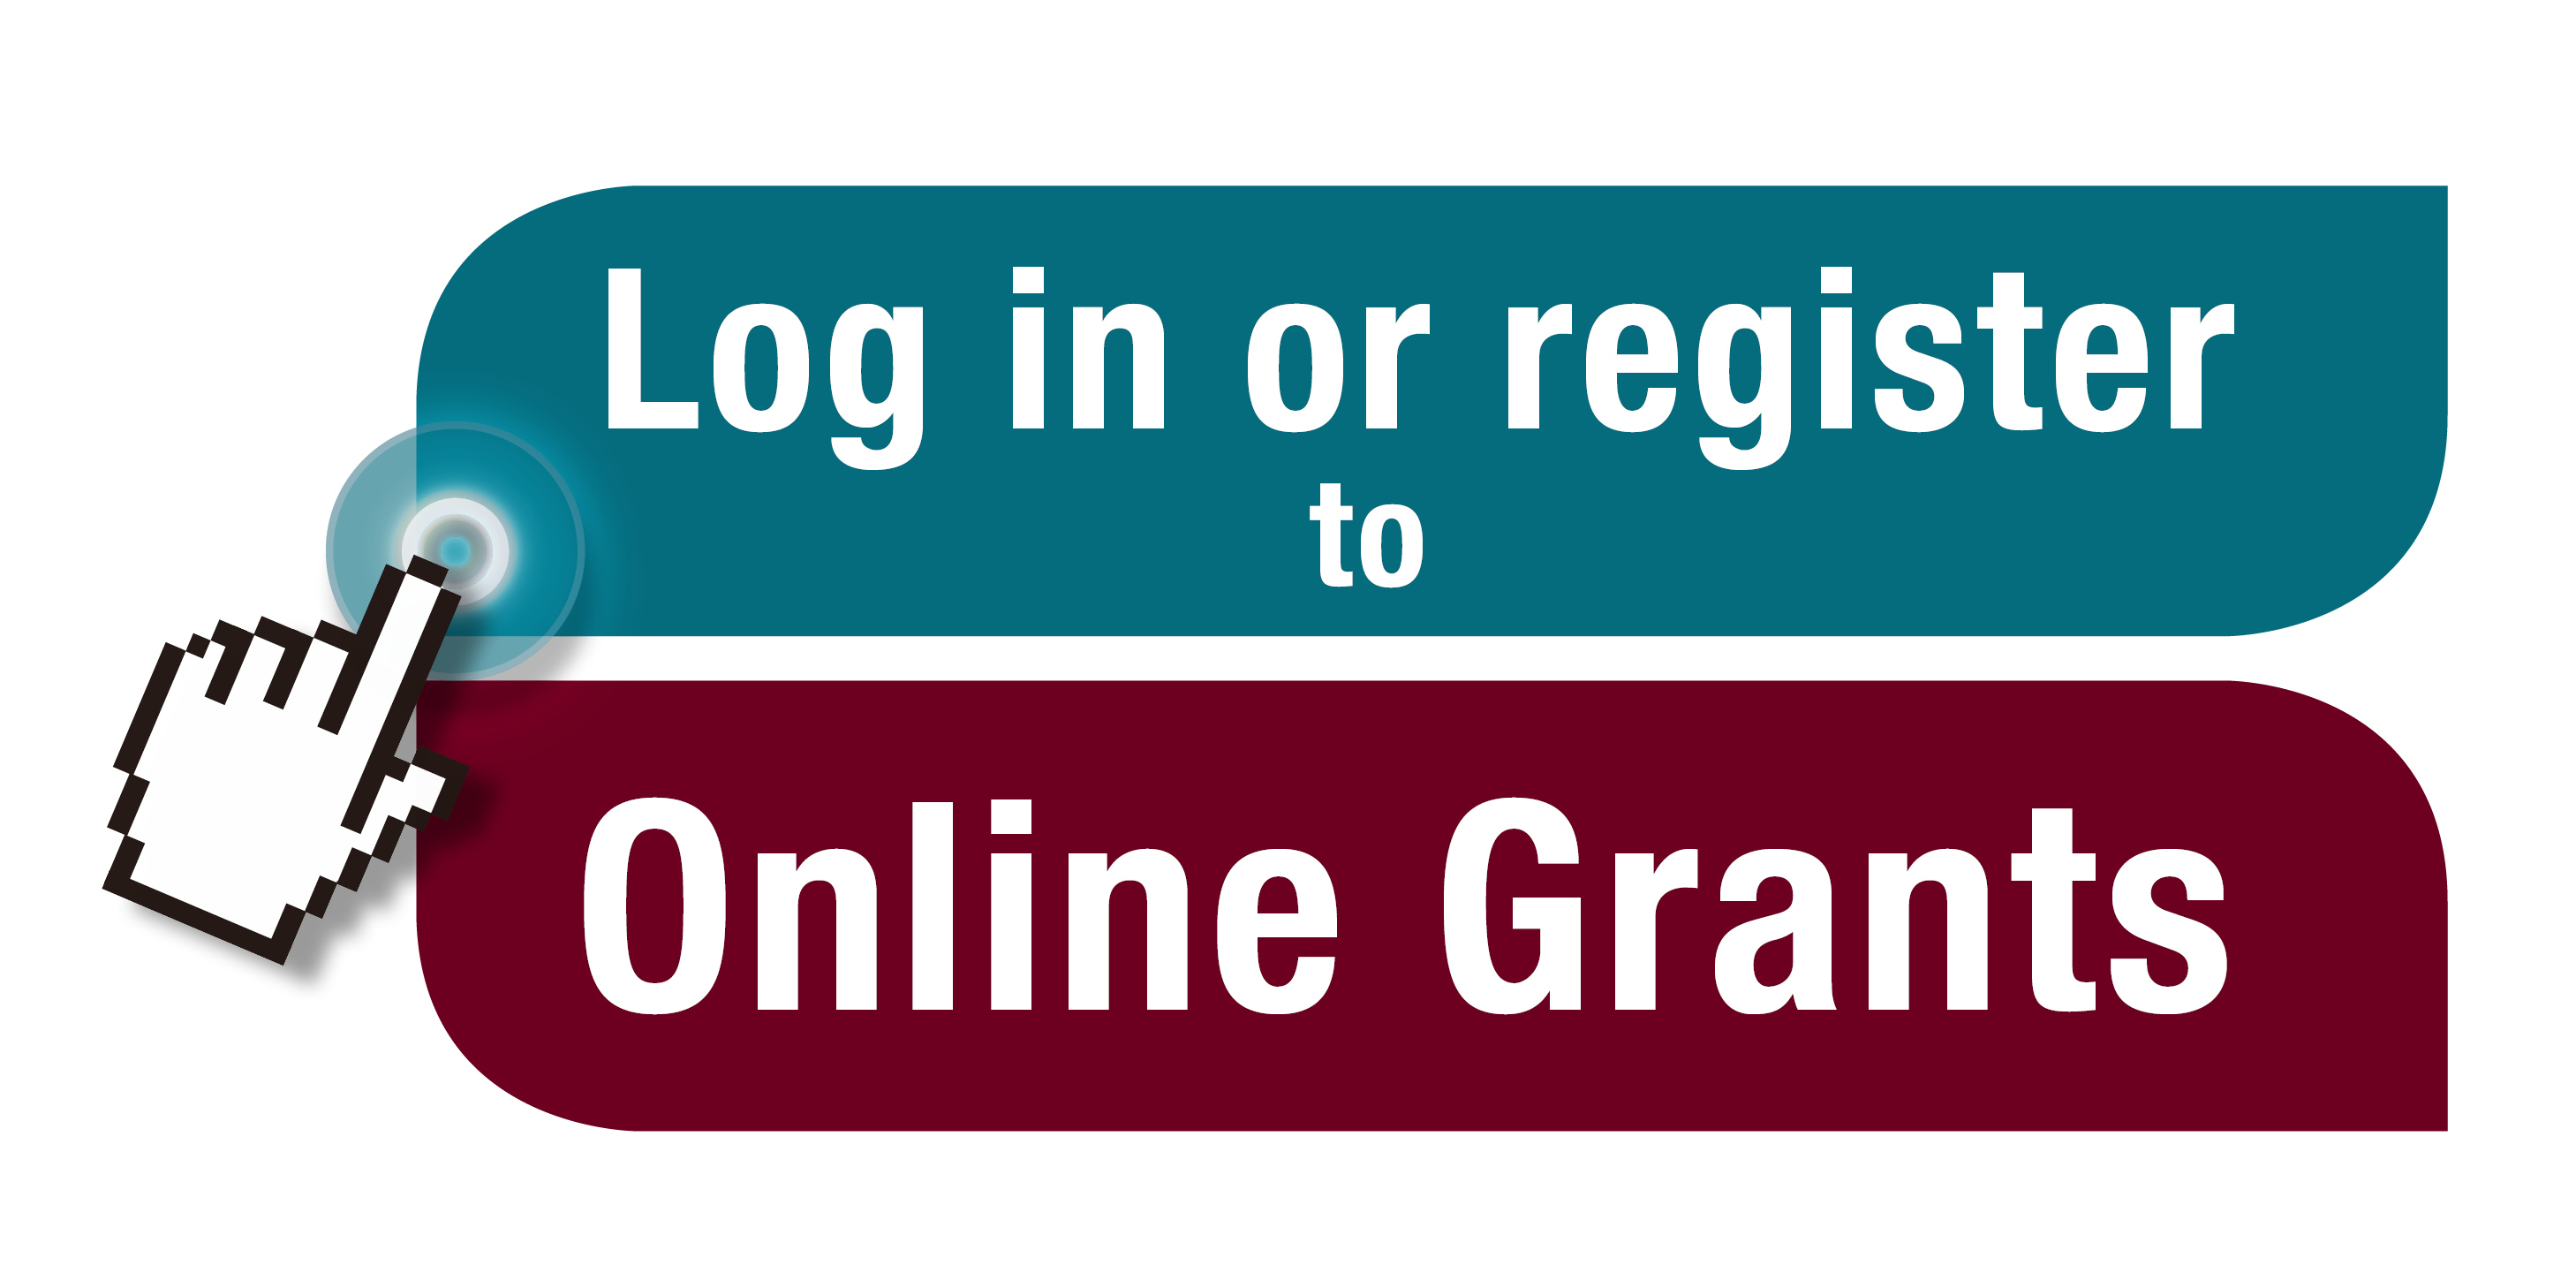 Enter online grants system